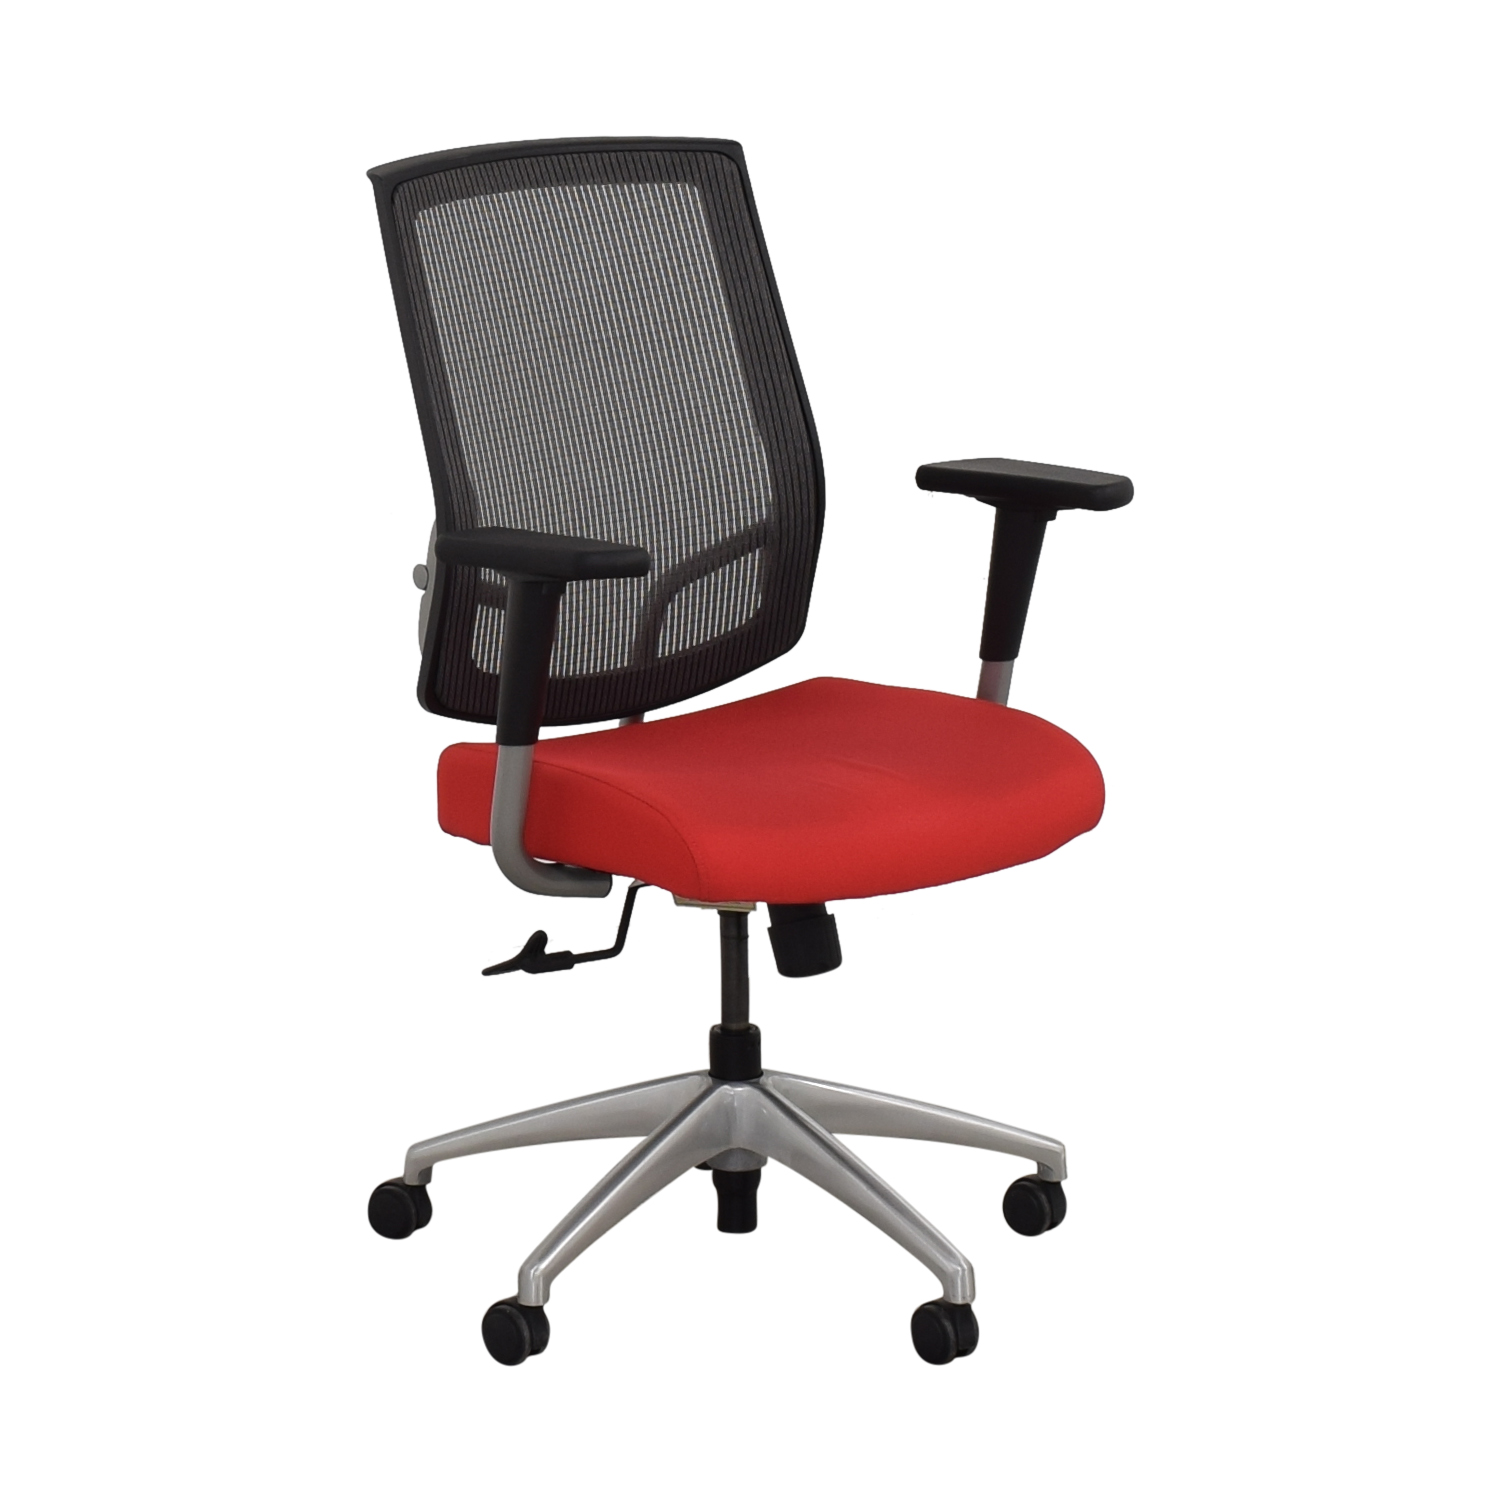 SitOnIt SitOnIt Focus High Back Office Chair discount